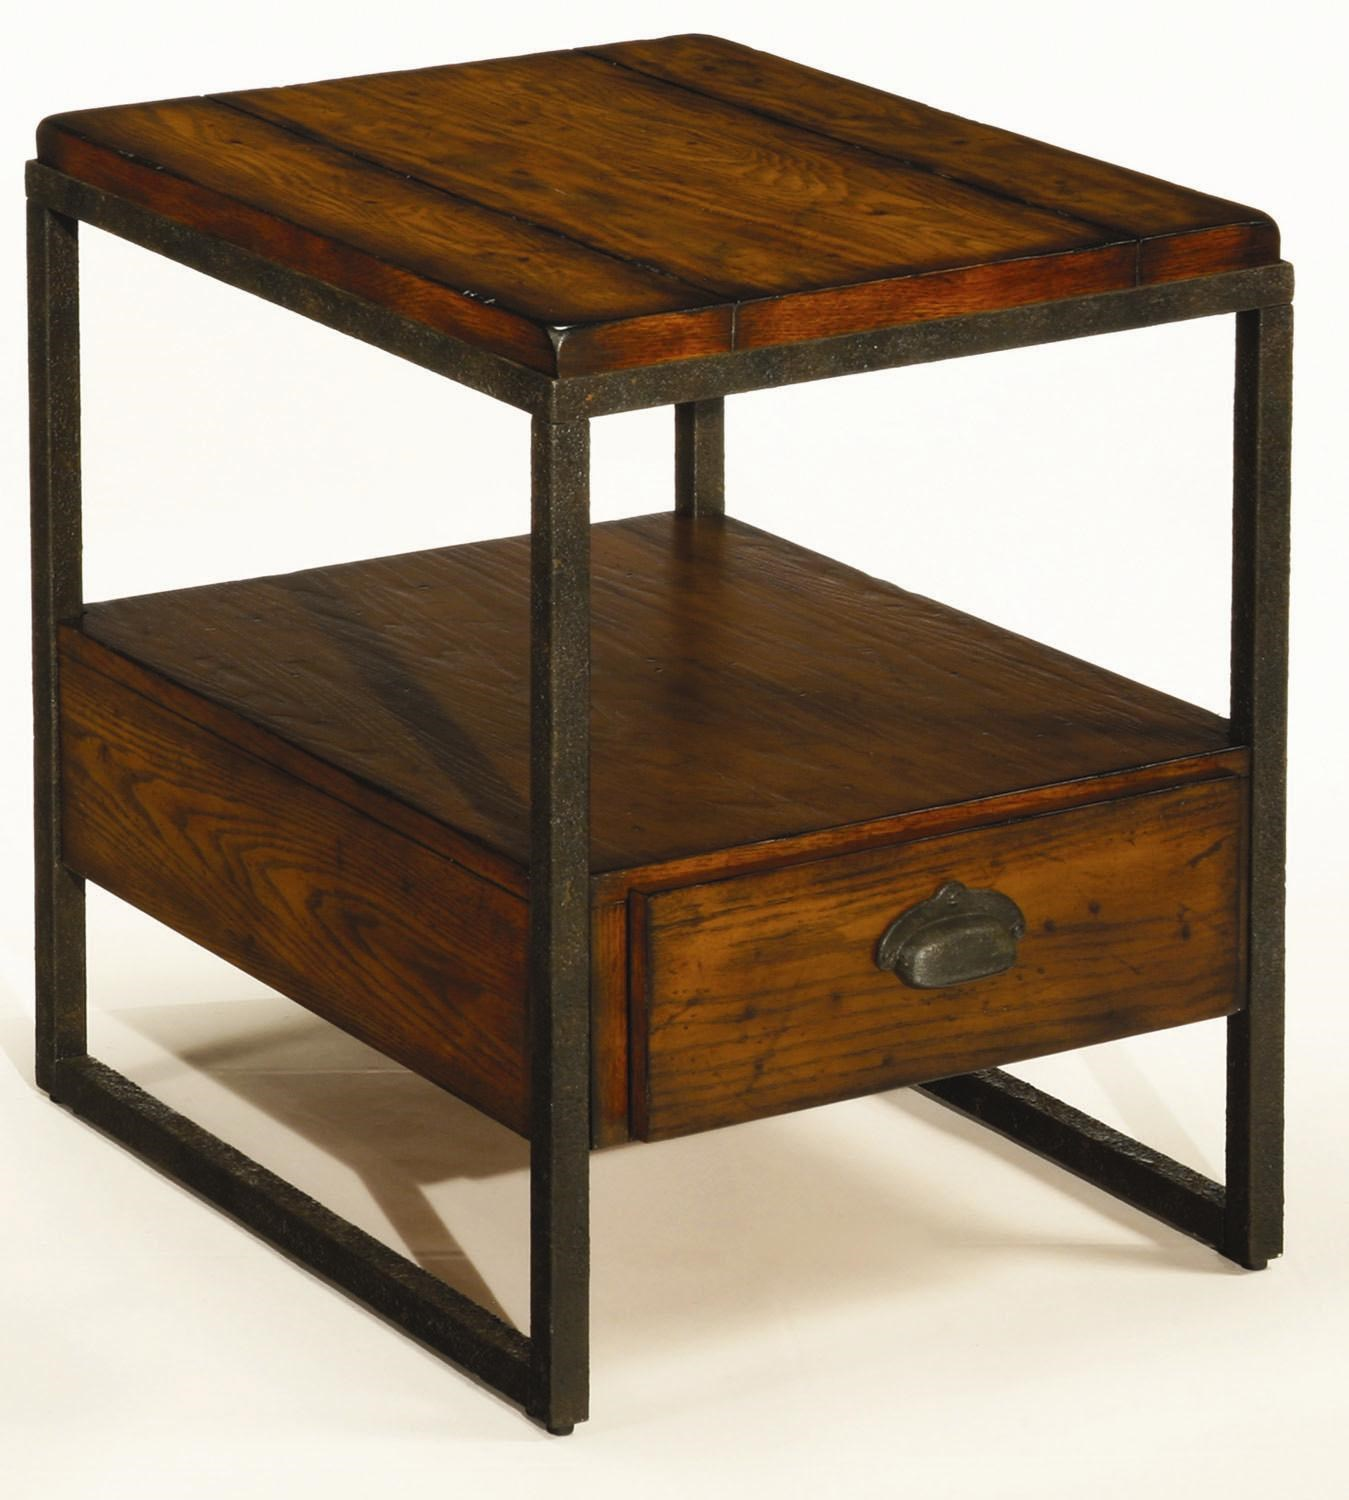 Ordinaire Hammary BajaRectangular Drawer End Table ...